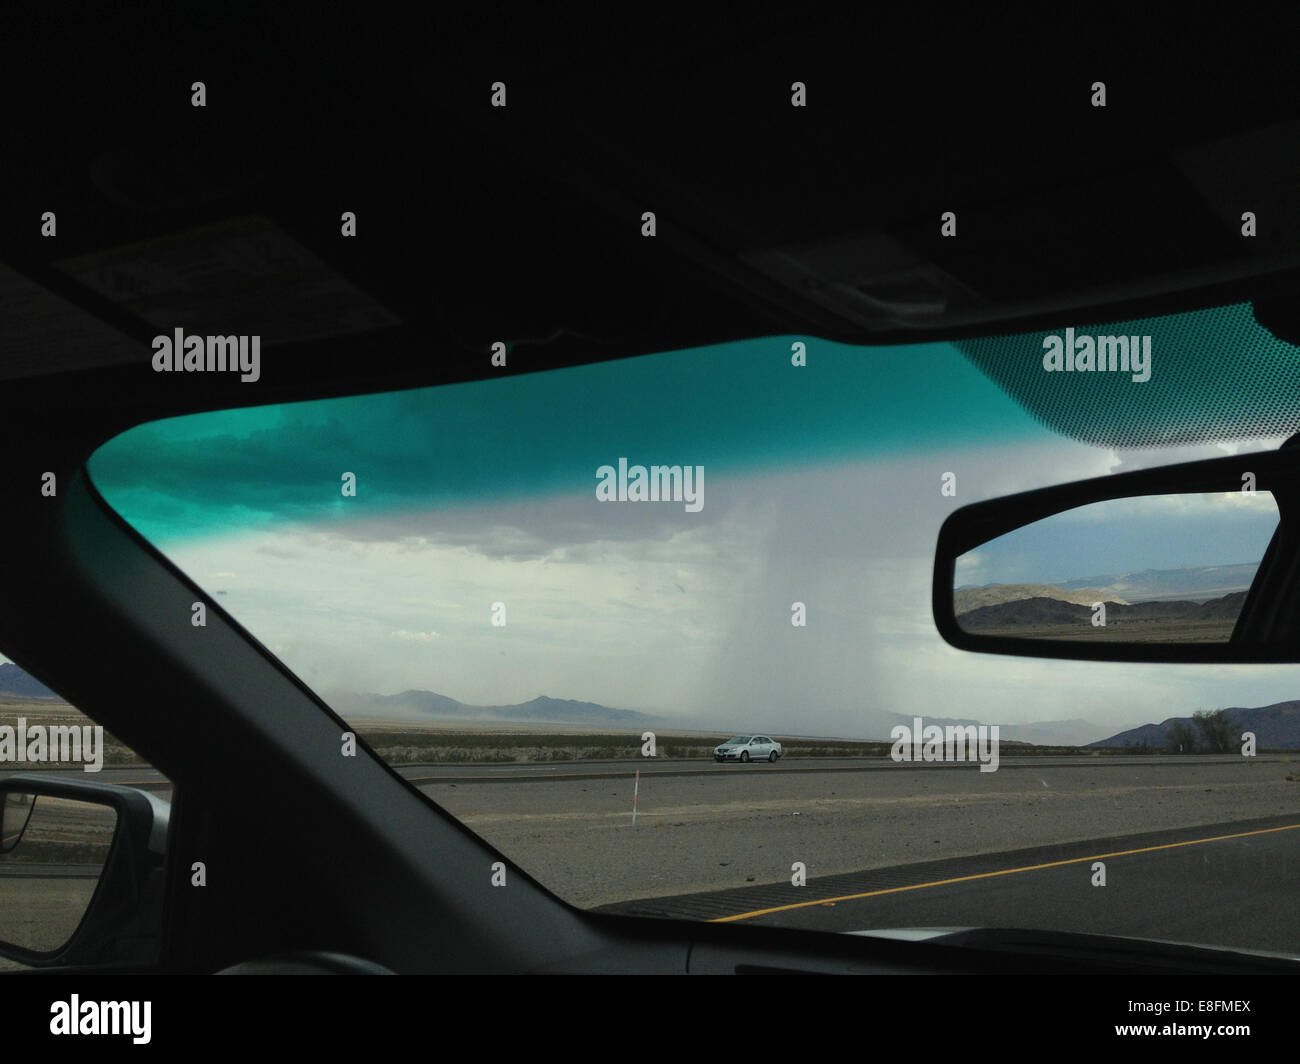 USA, Nevada, Storm seen from car interior - Stock Image